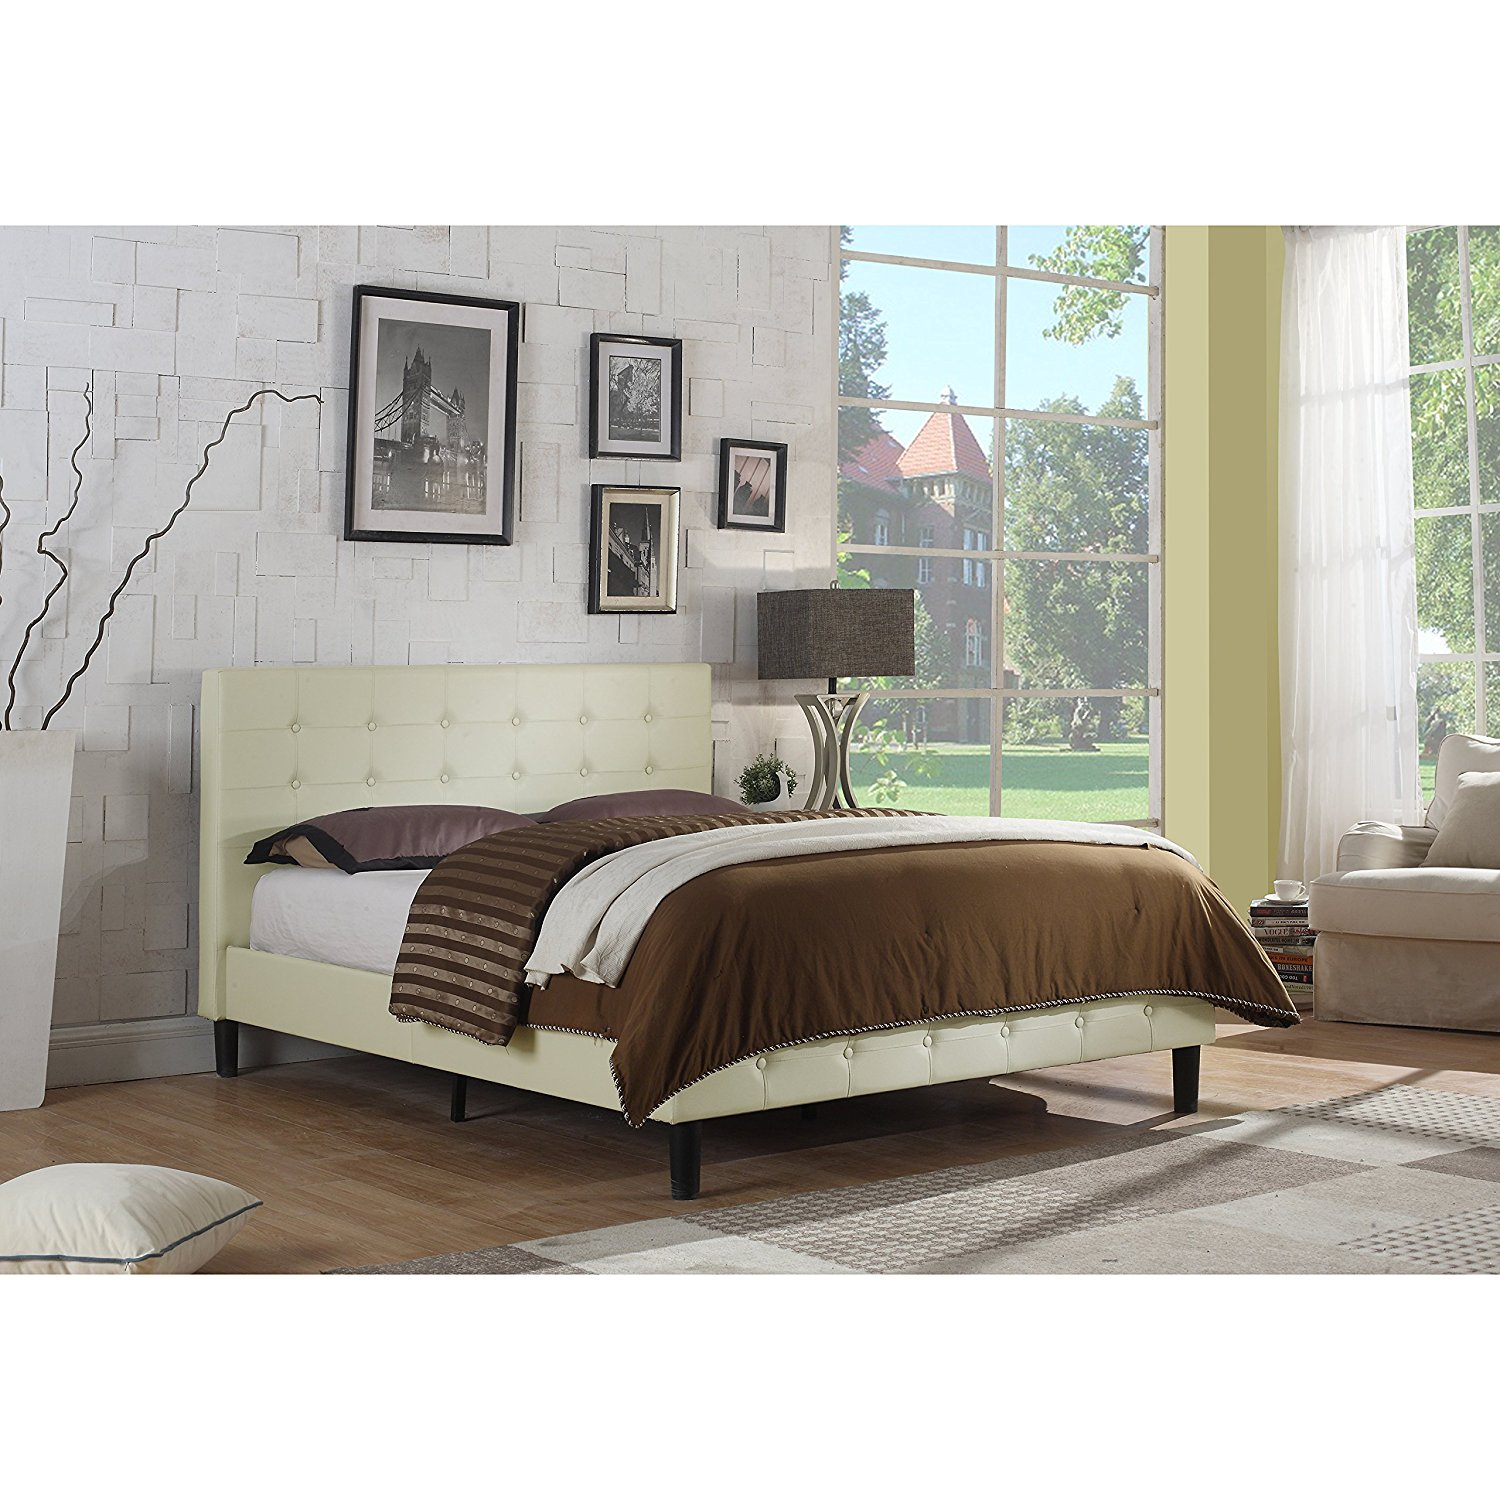 Alton Furniture Antonia Tufted Upholstered Panel/Platform Bed